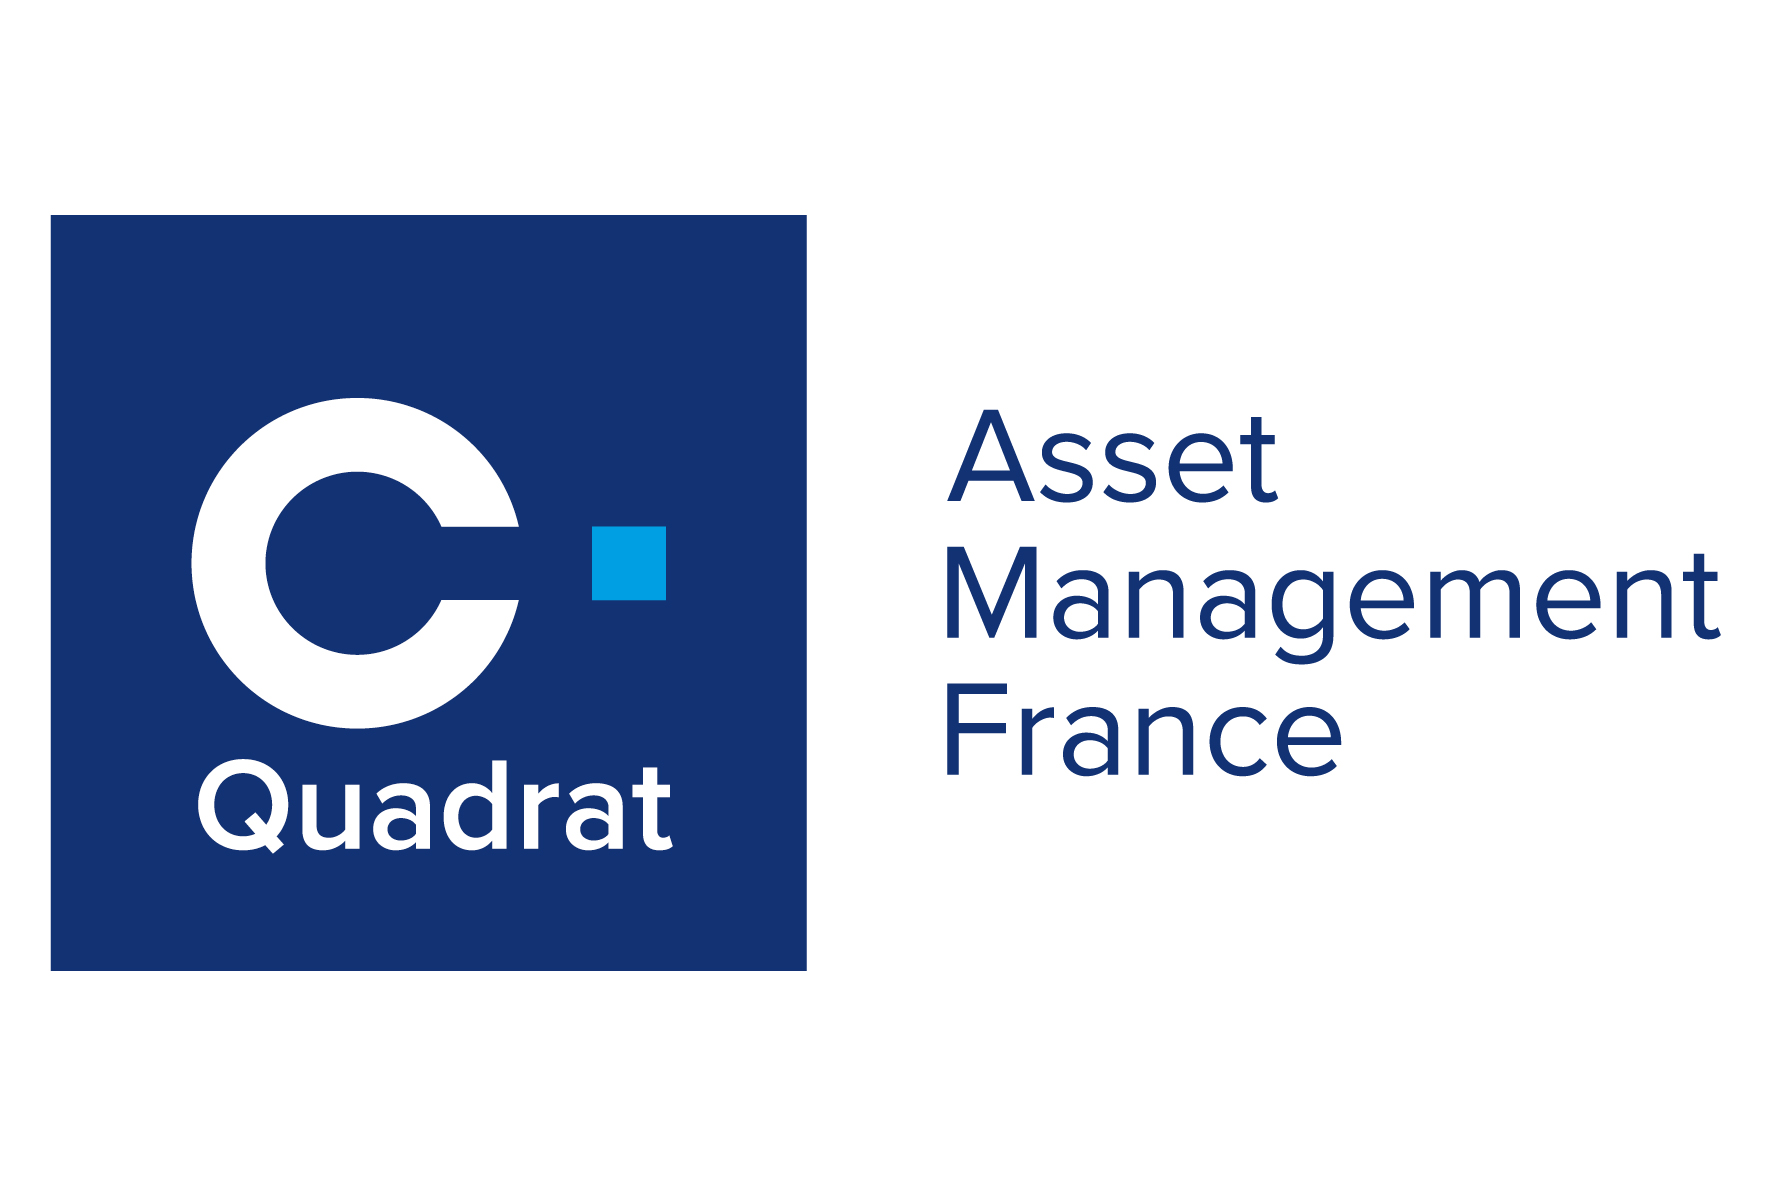 C-QUADRAT ASSET MANAGEMENT